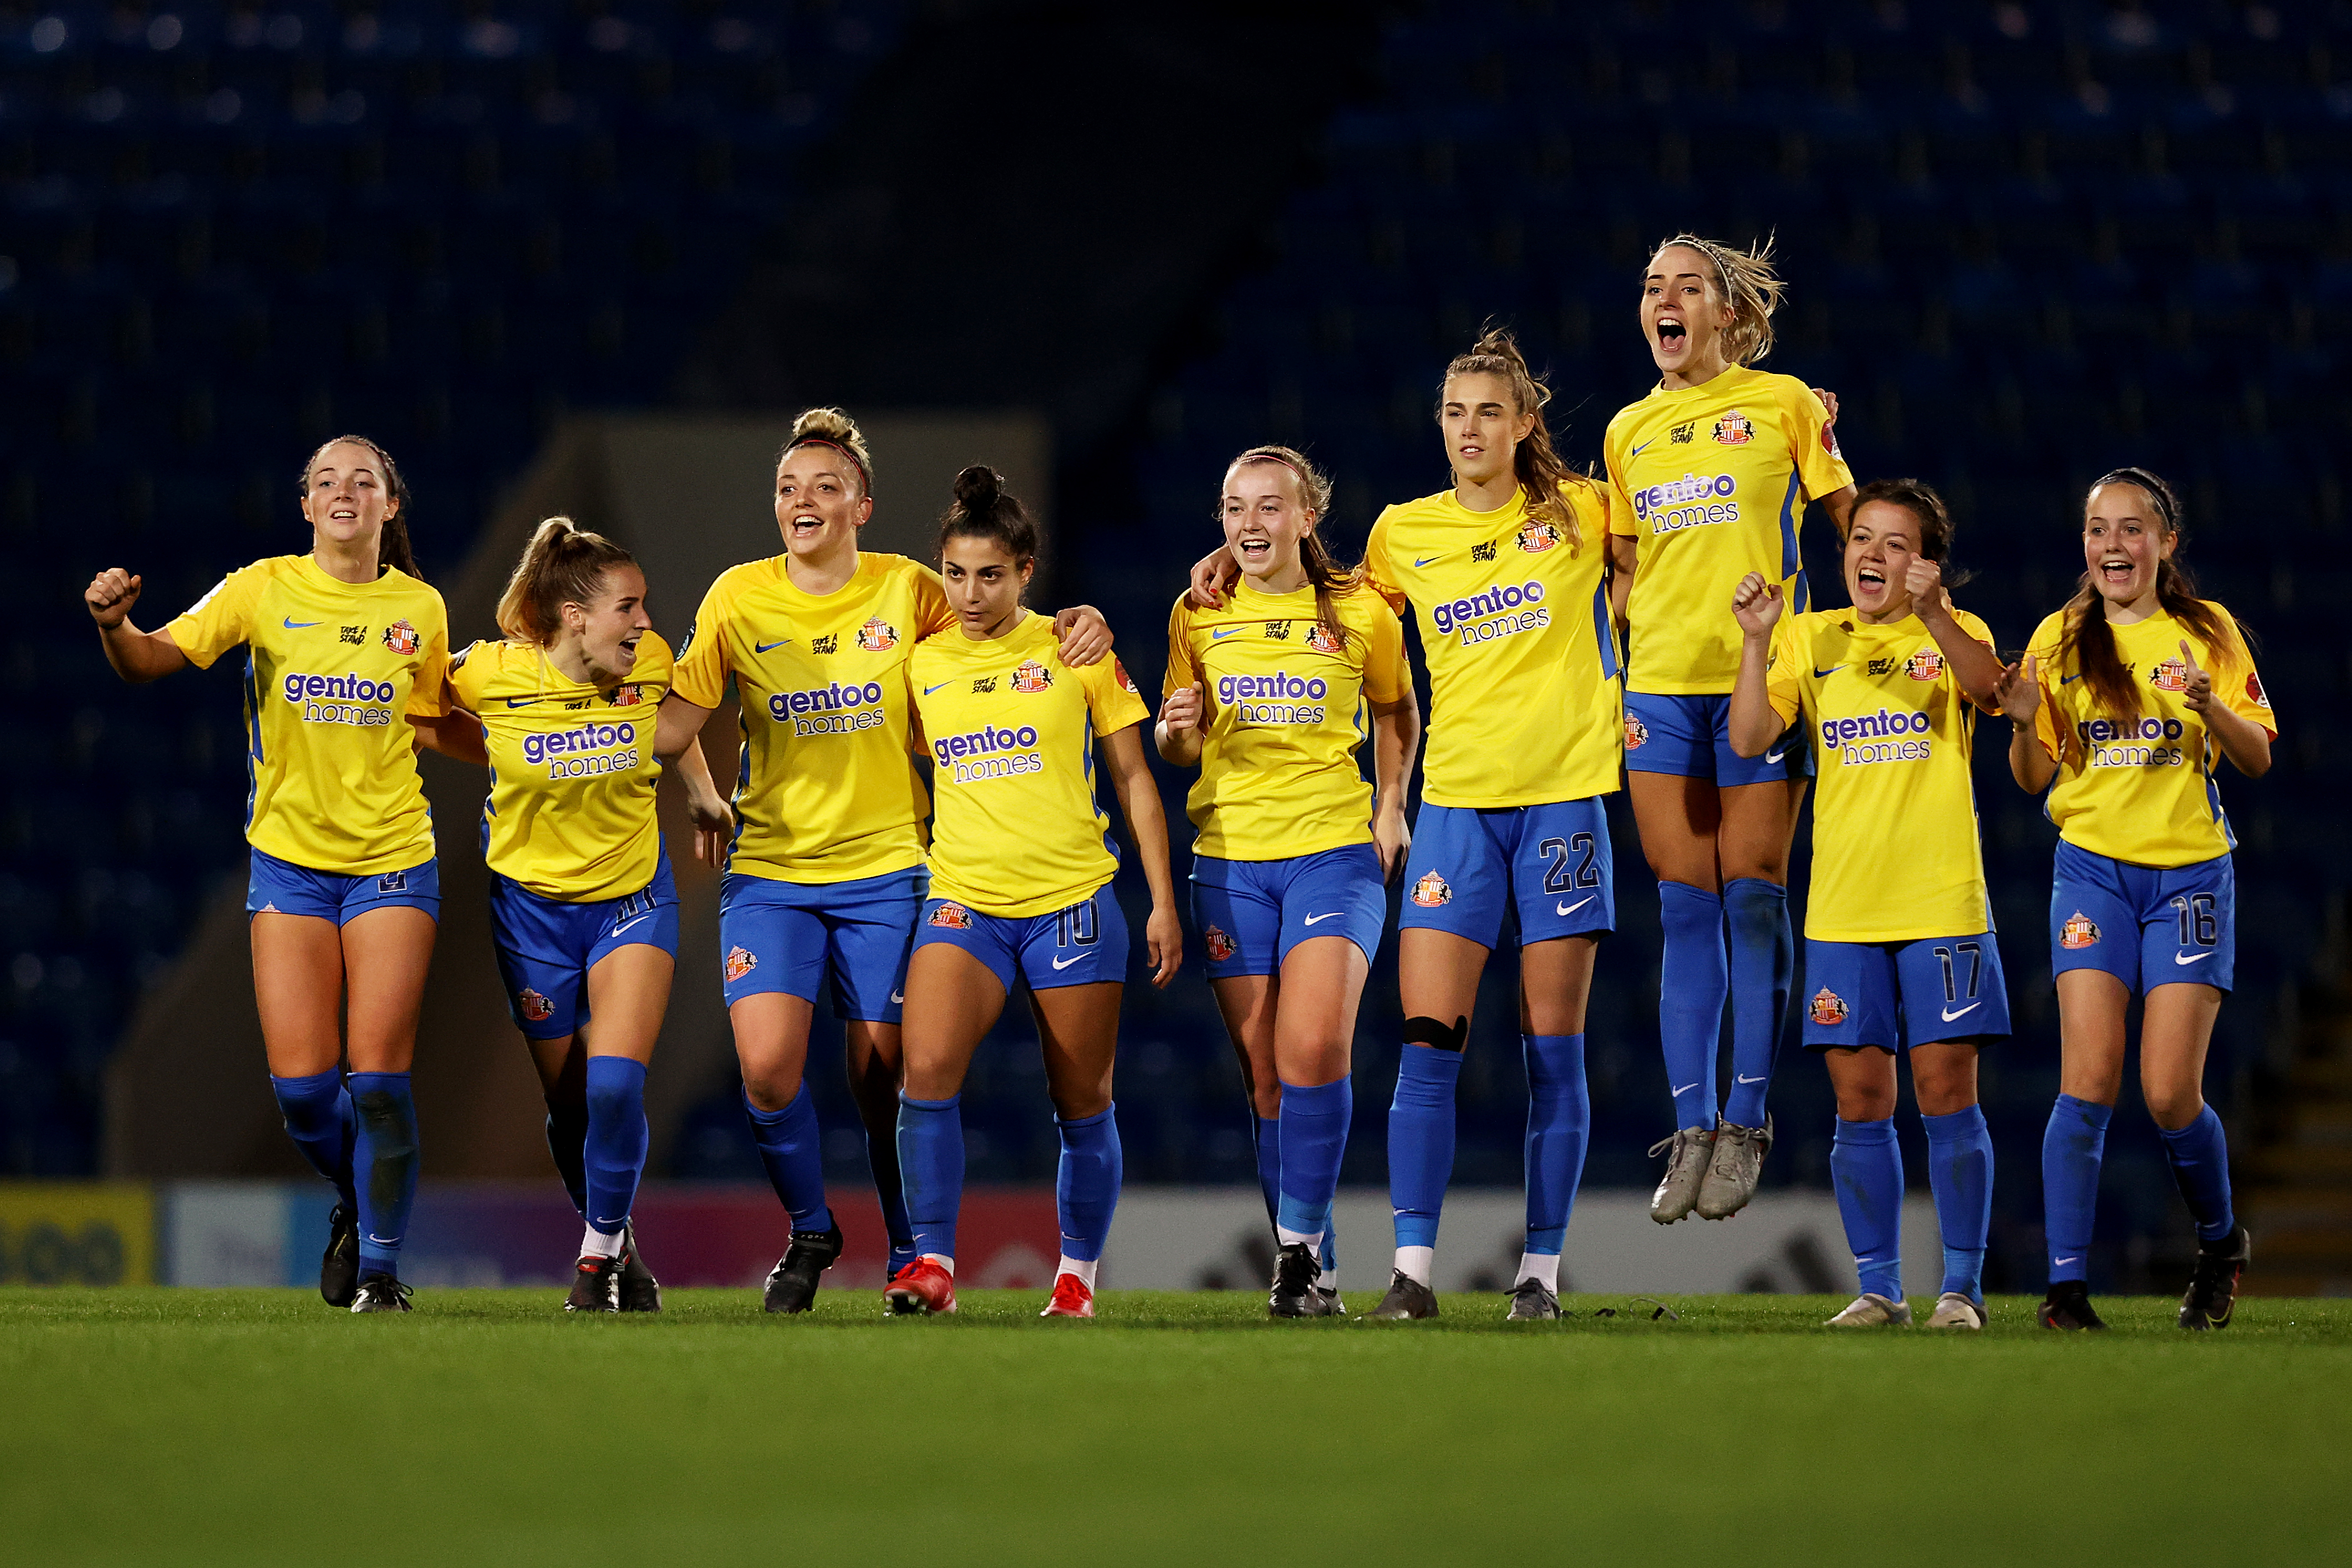 Sheffield United Women v Sunderland Ladies - FA Women's Continental Tyres League Cup